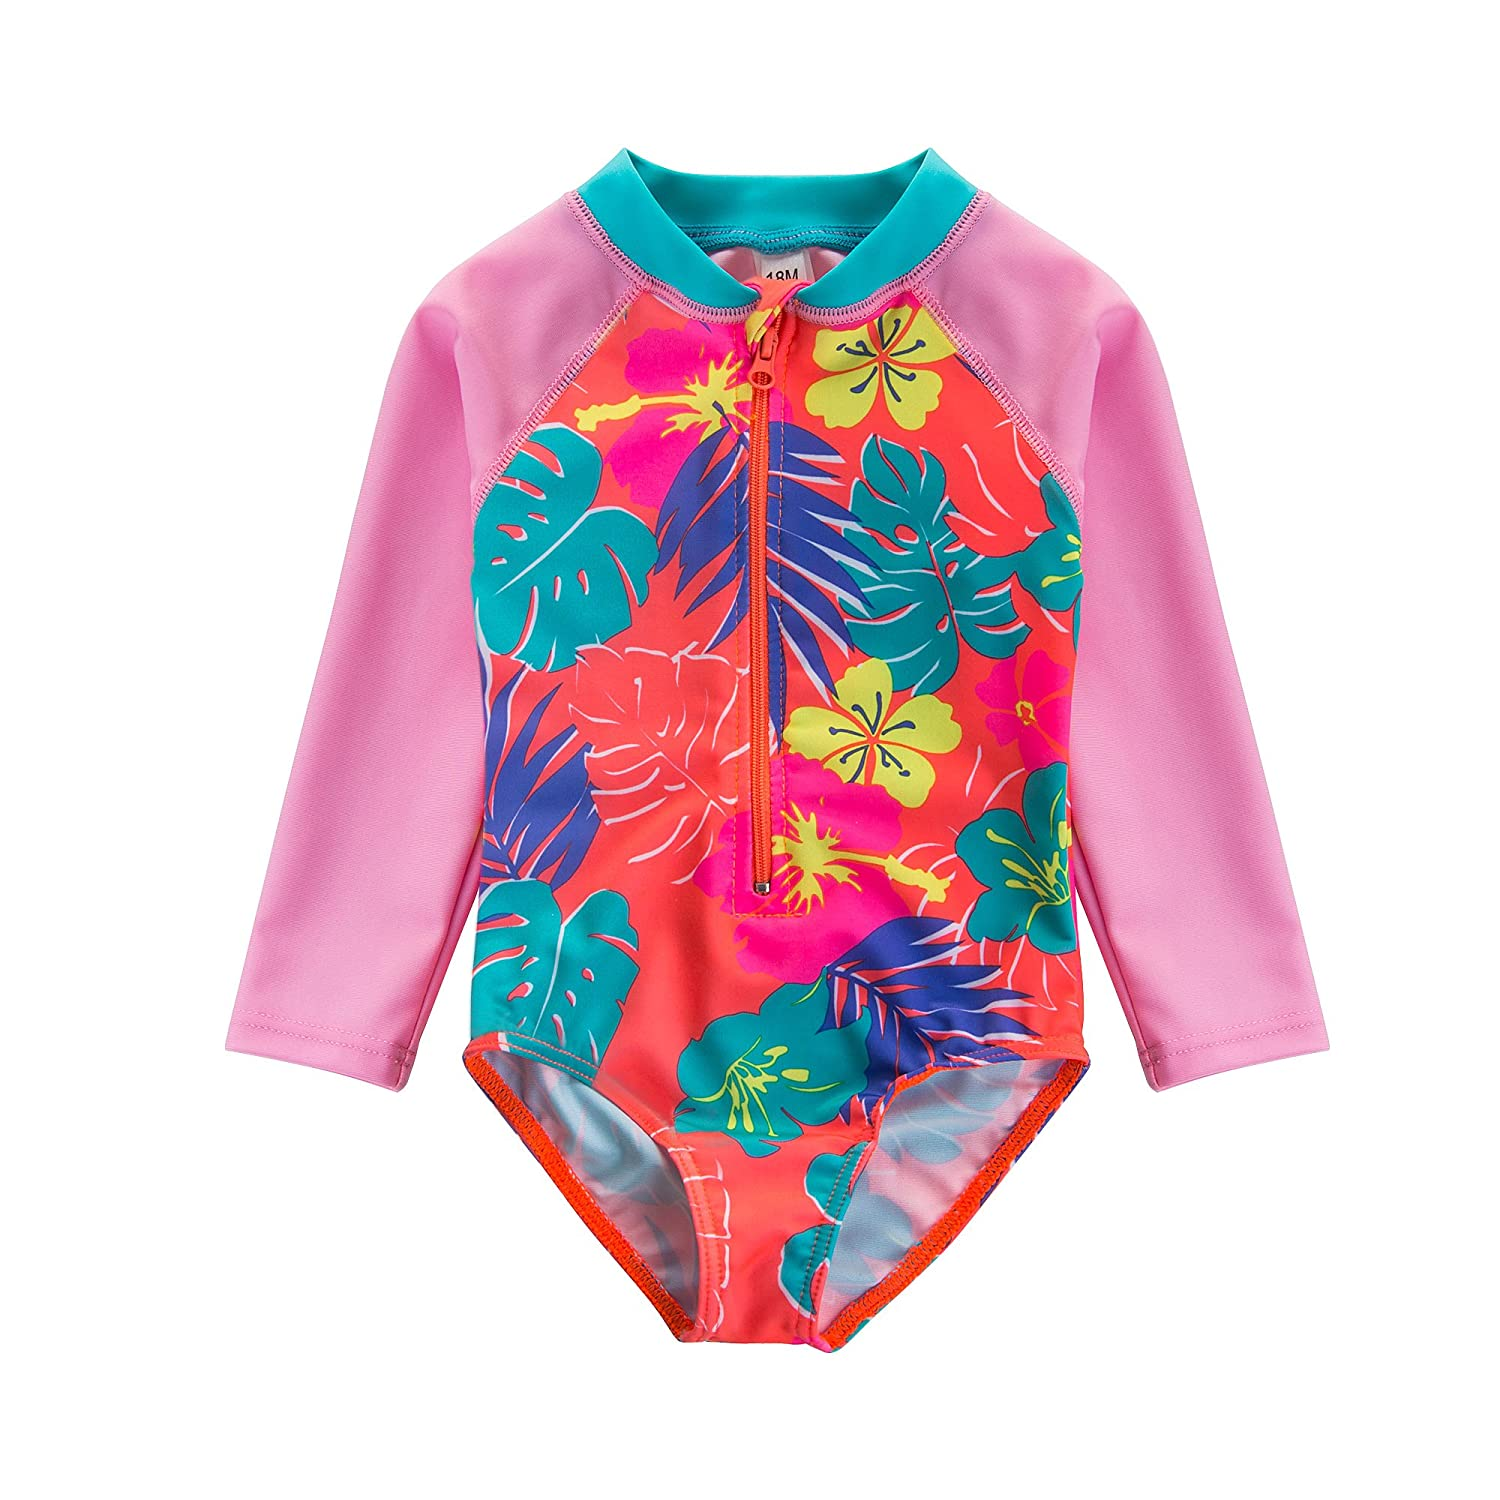 Wishere Baby Girl One-Piece Swimsuit Sunsuit Rash Guard